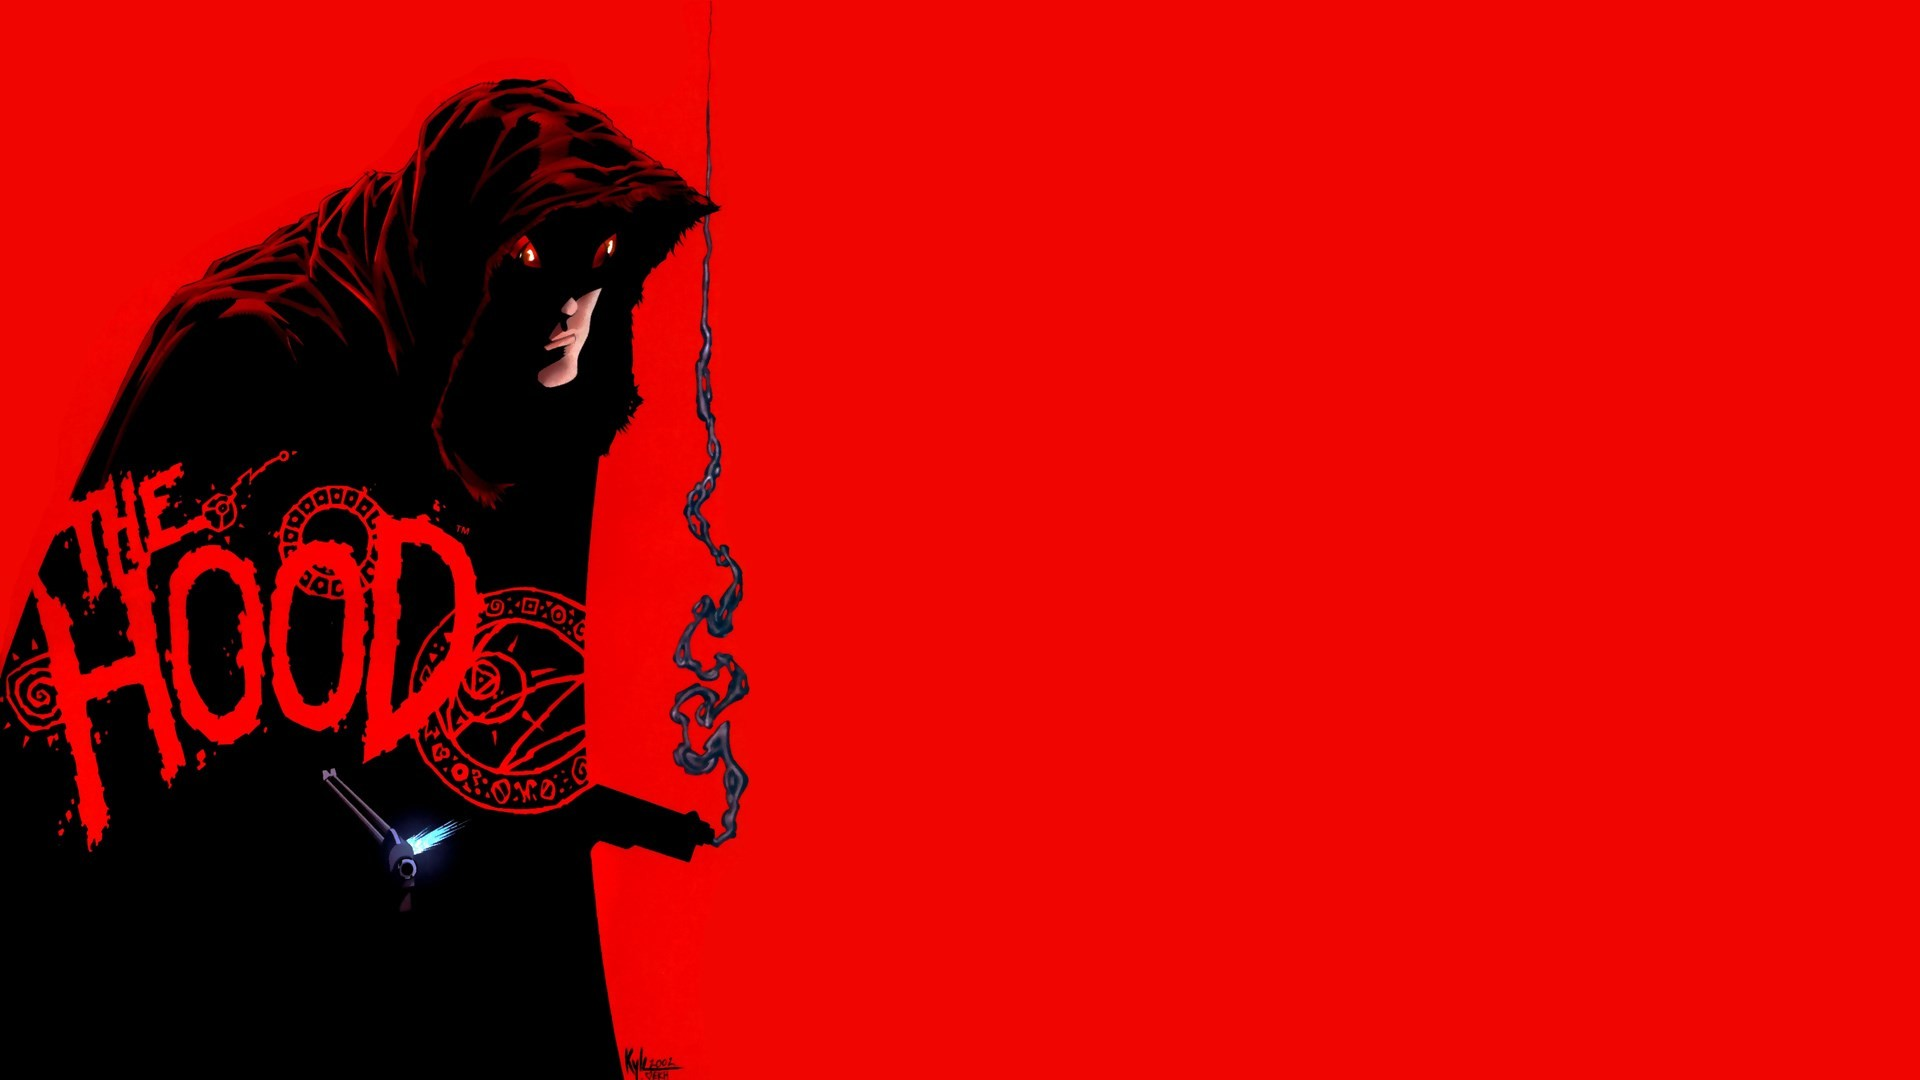 23 Red Hood HD Wallpapers | Backgrounds – Wallpaper Abyss